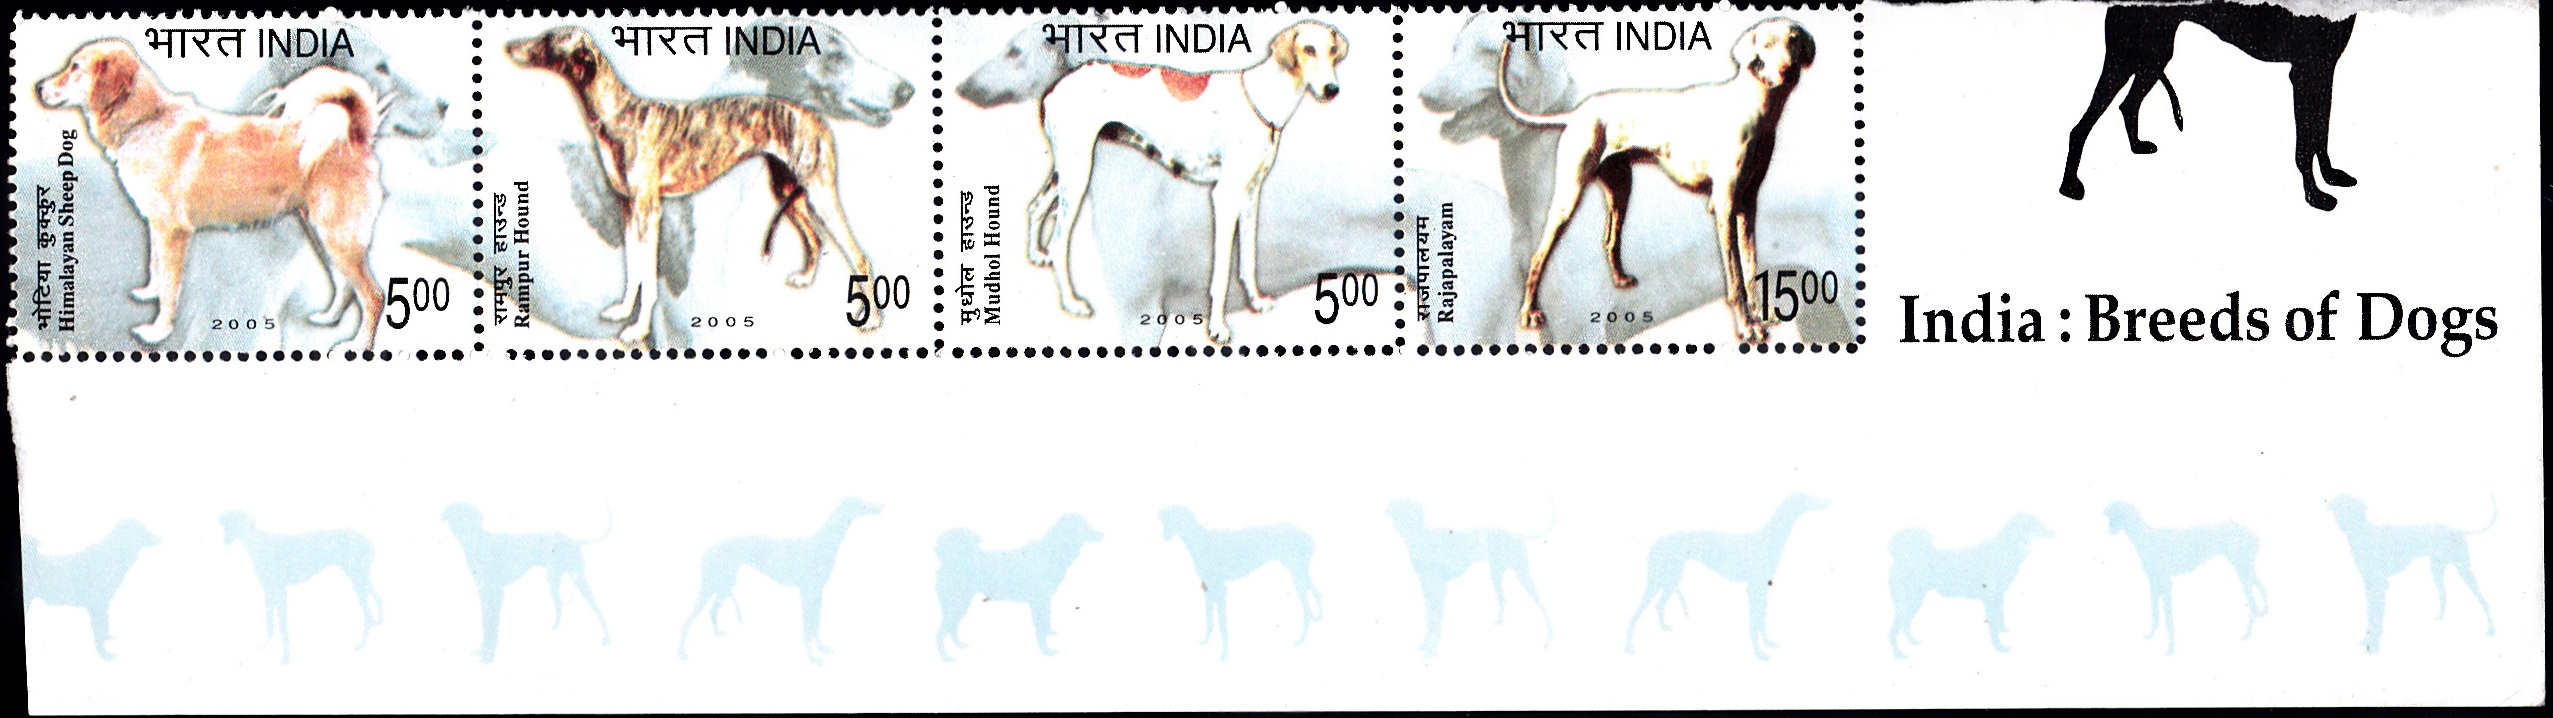 Gaddi kutta, Rampur greyhound, Caravan hound and Poligar hound